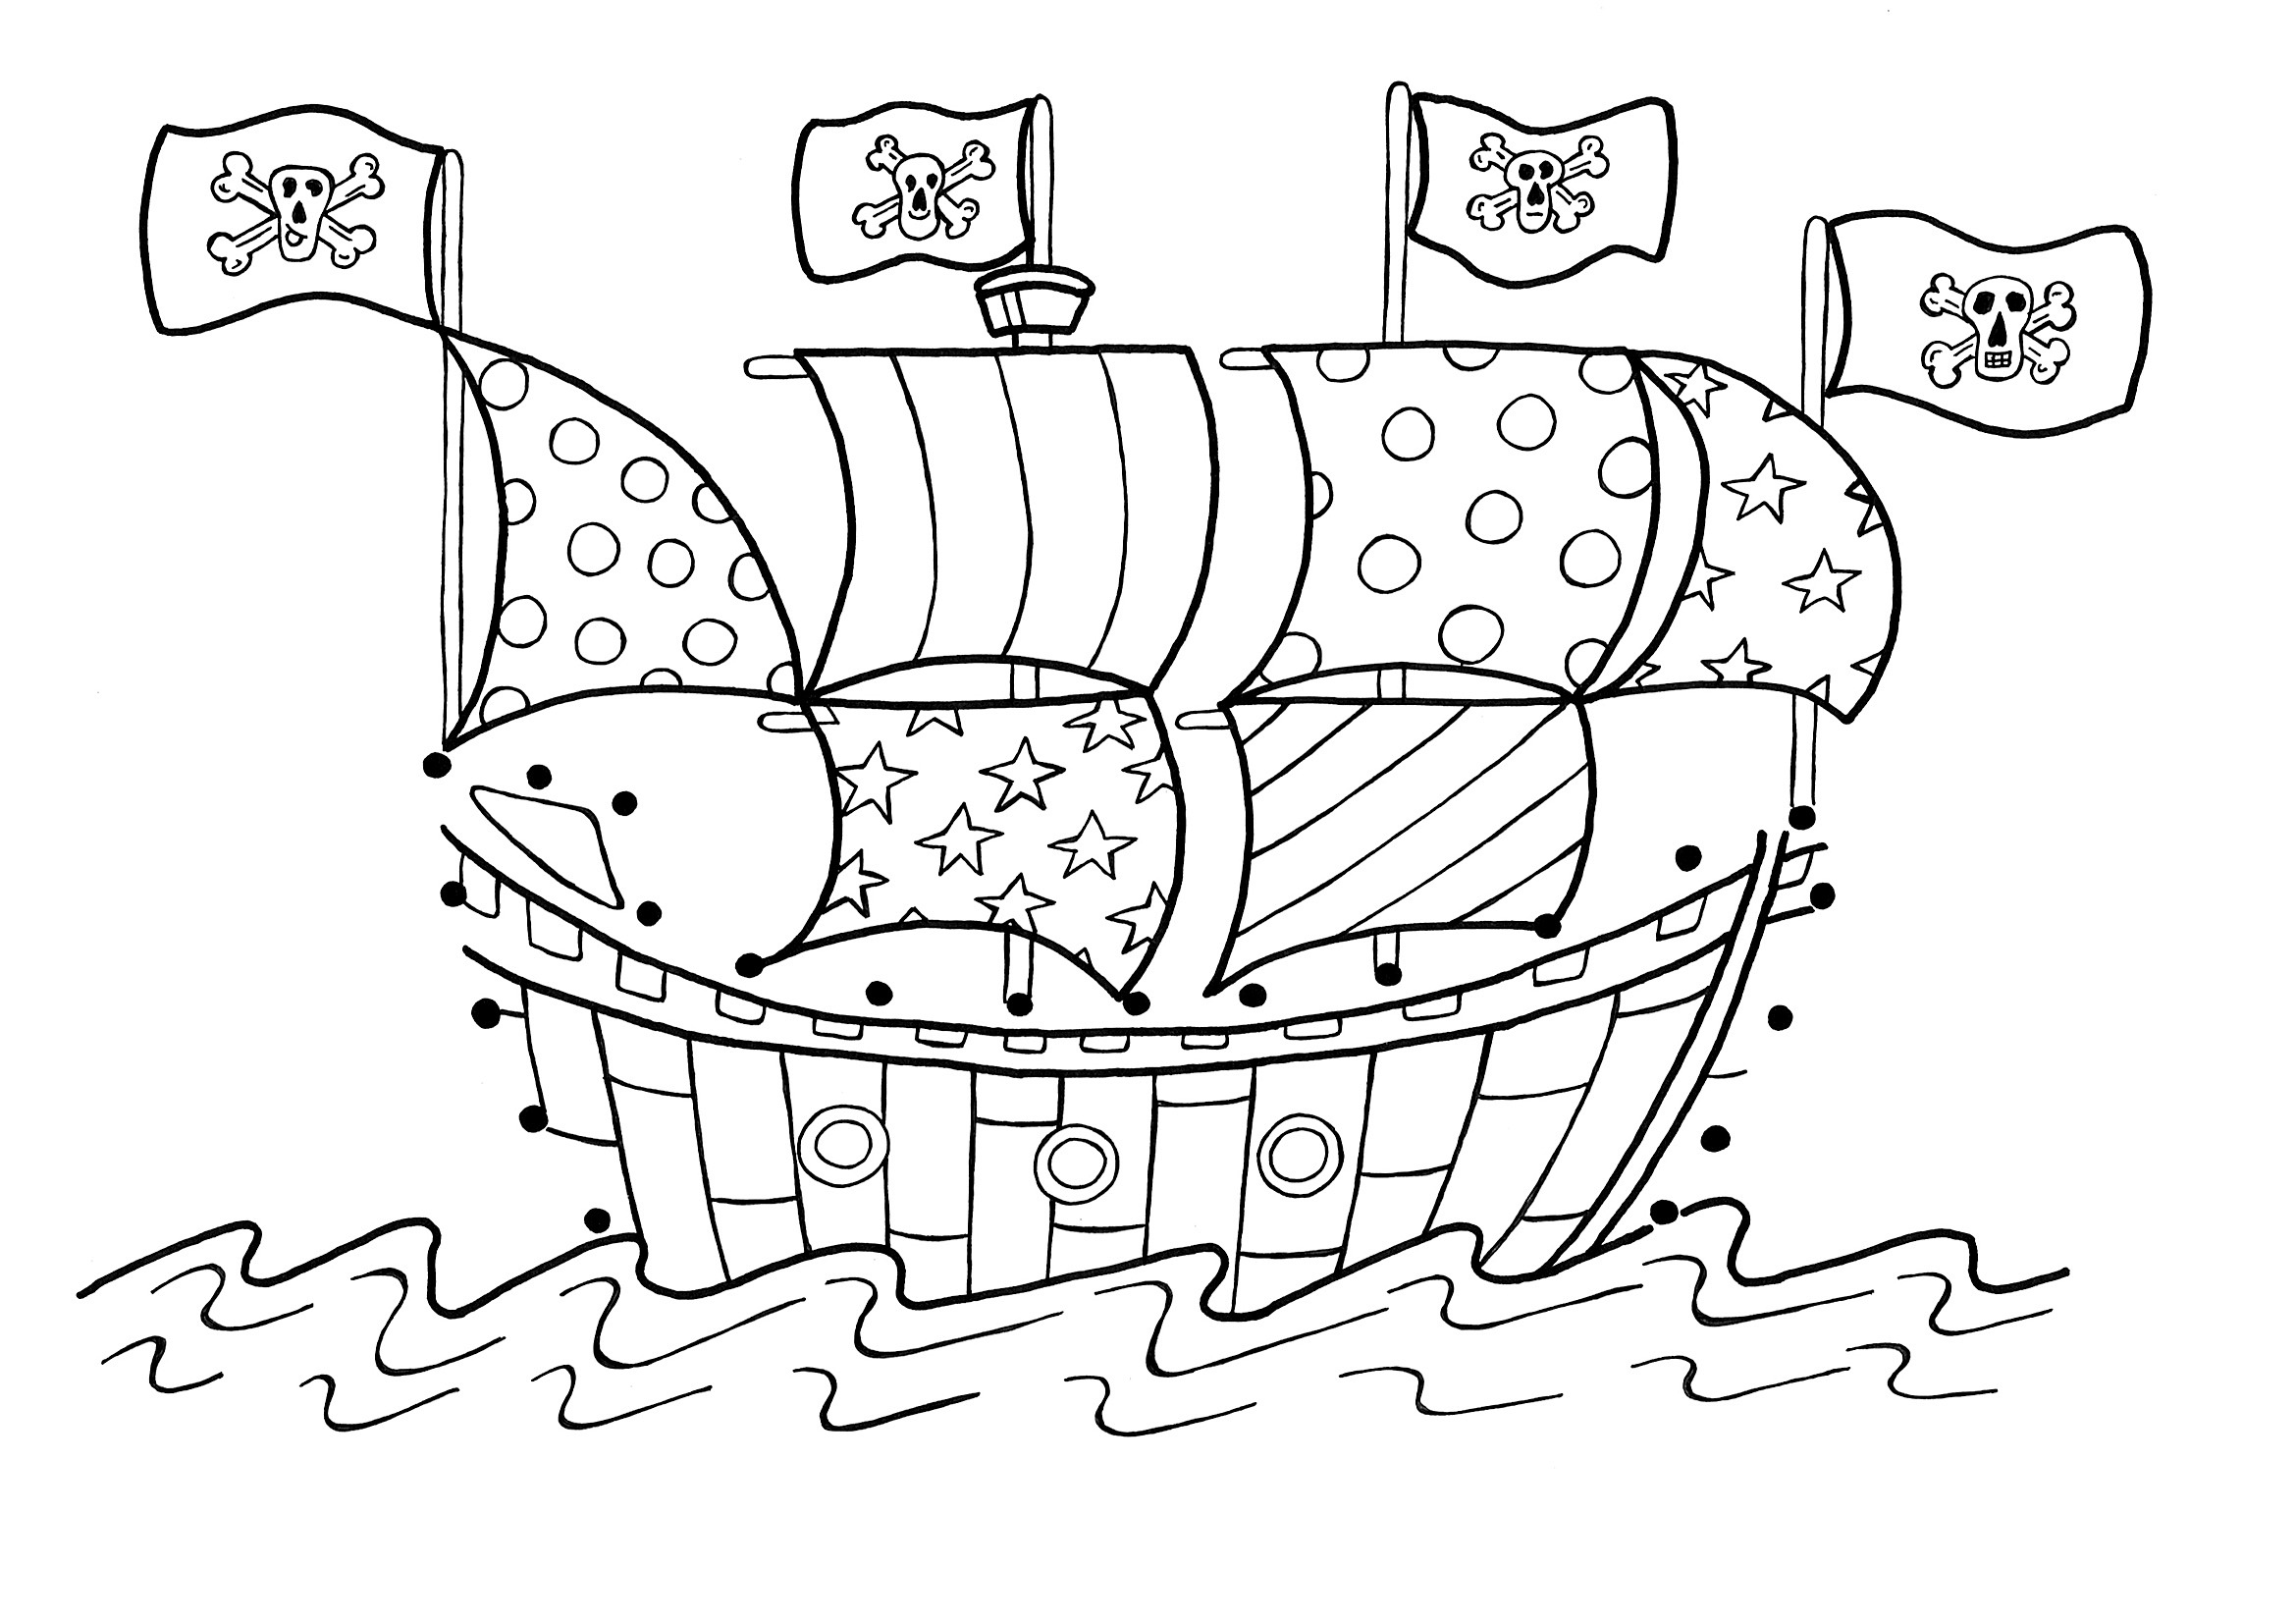 irate coloring pages - photo#1